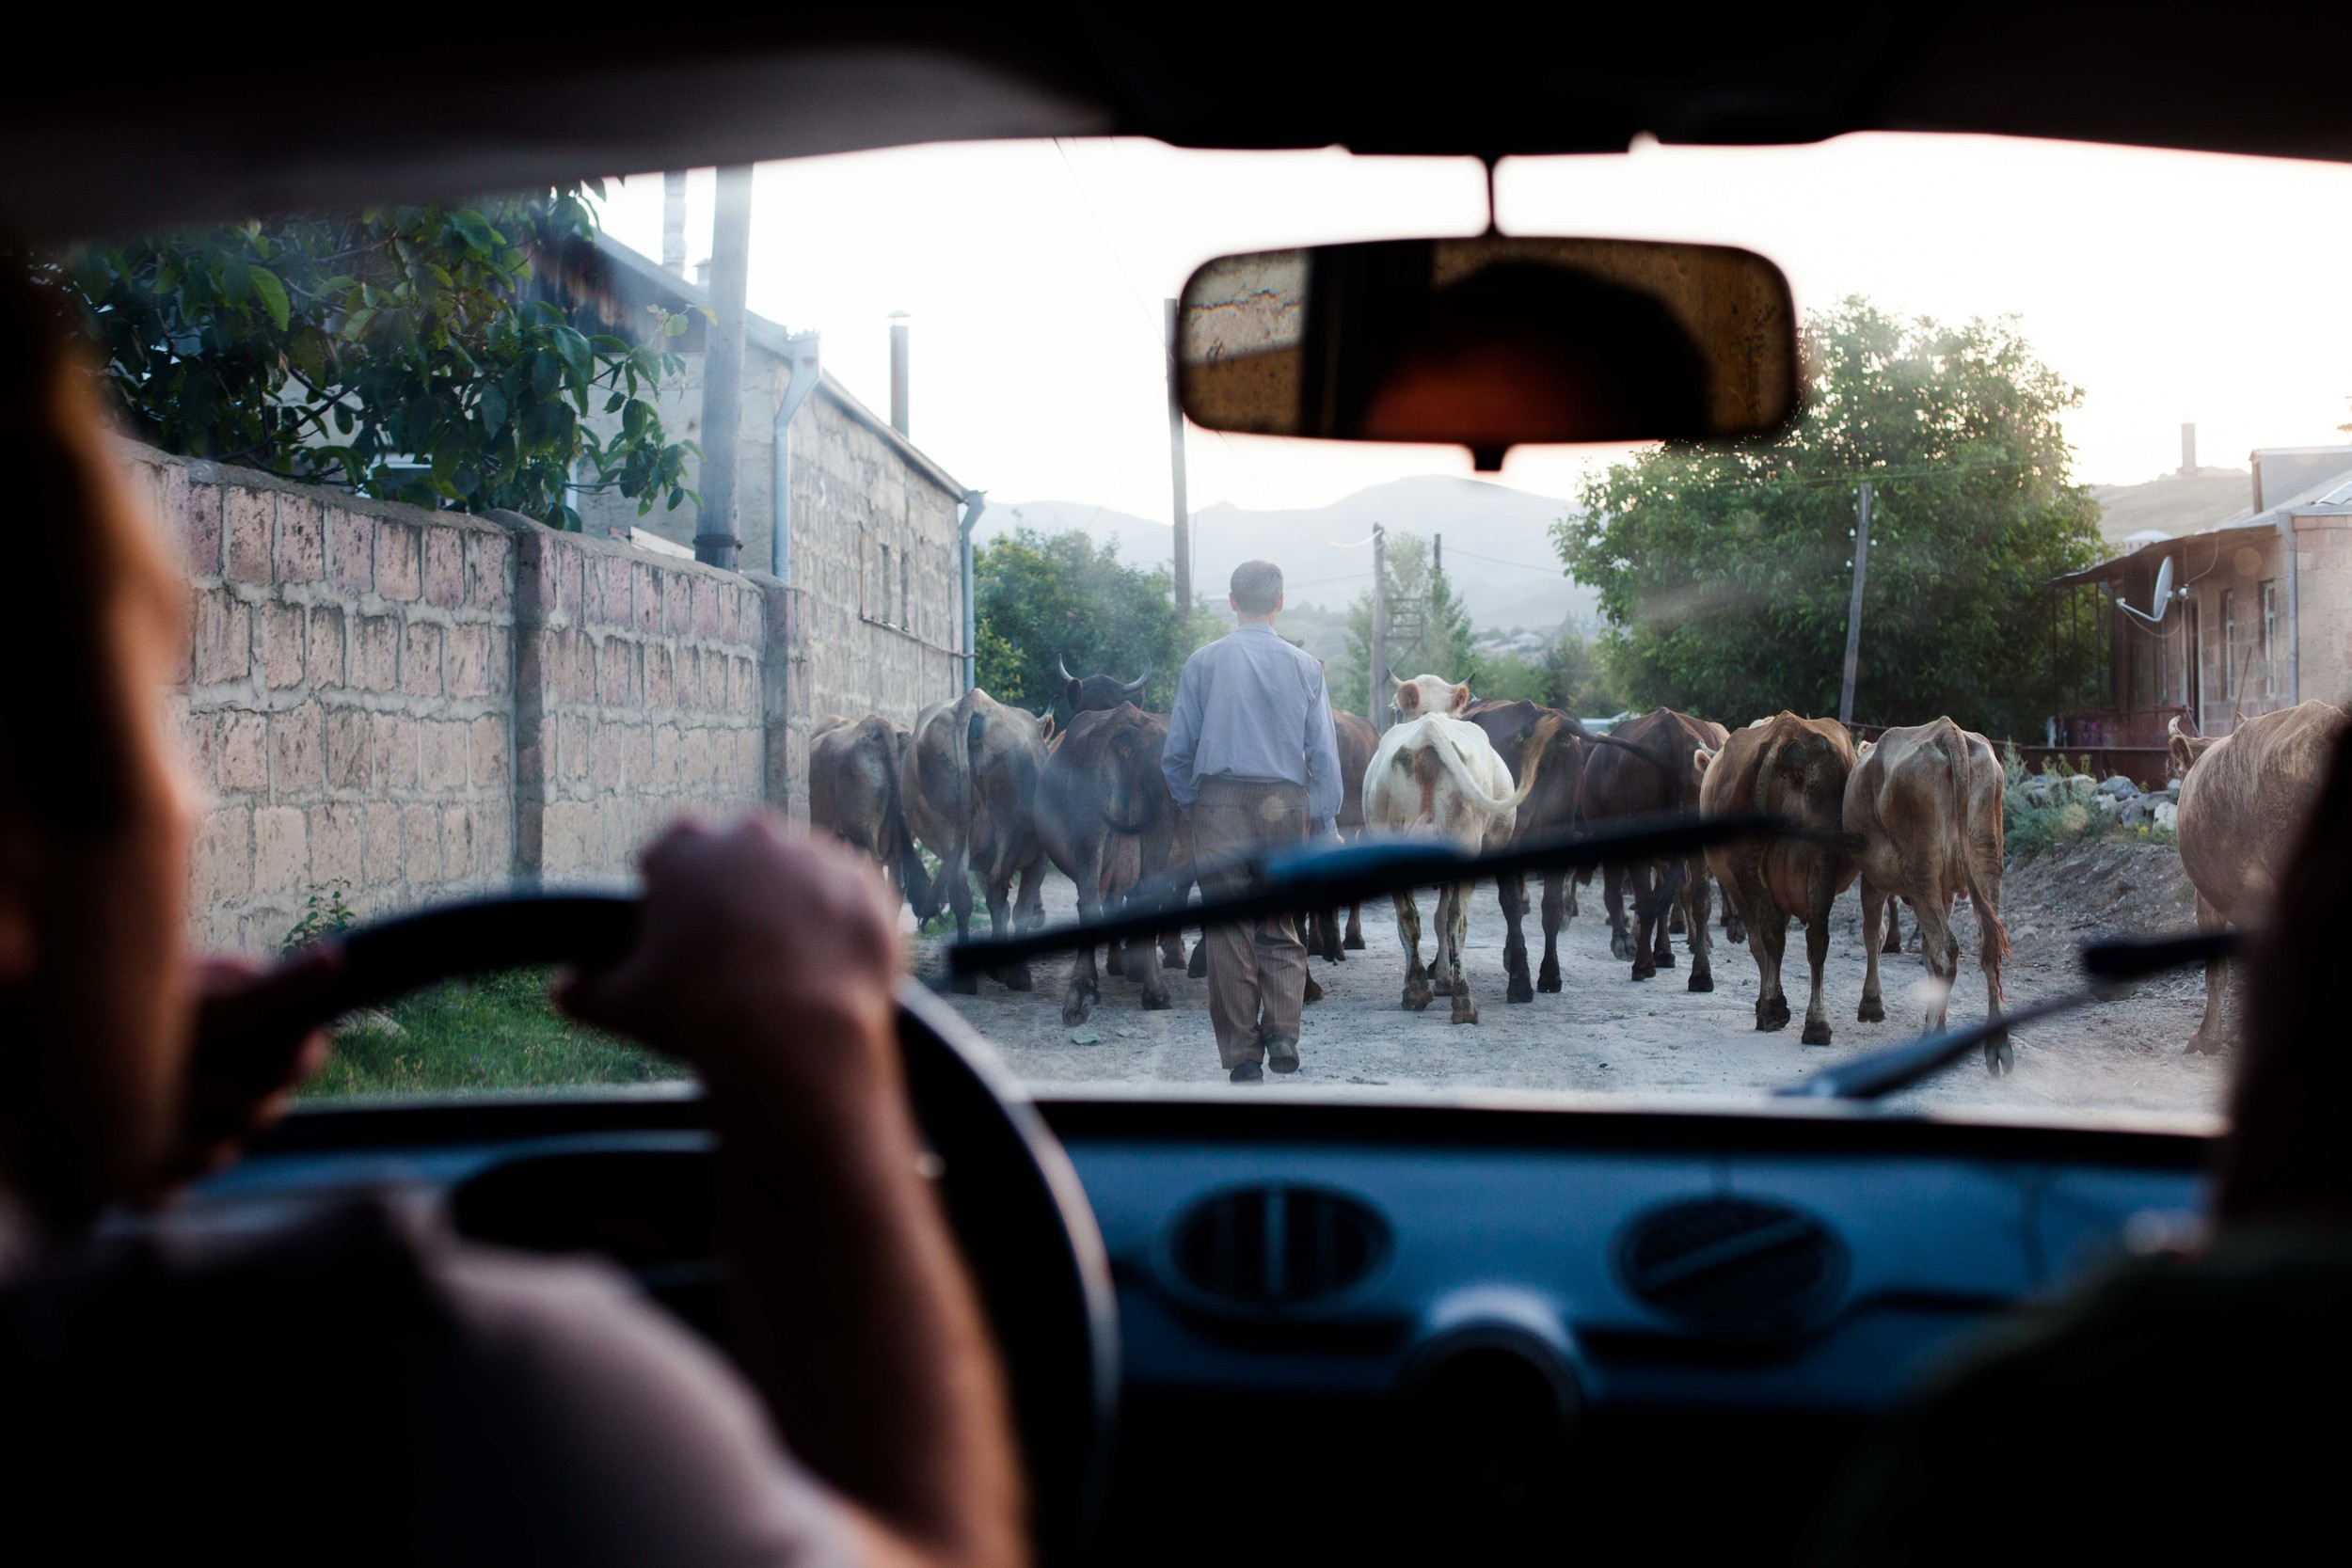 A traffic jam on a Spitak evening is caused by the herd of local cows being brought back home from the fields.